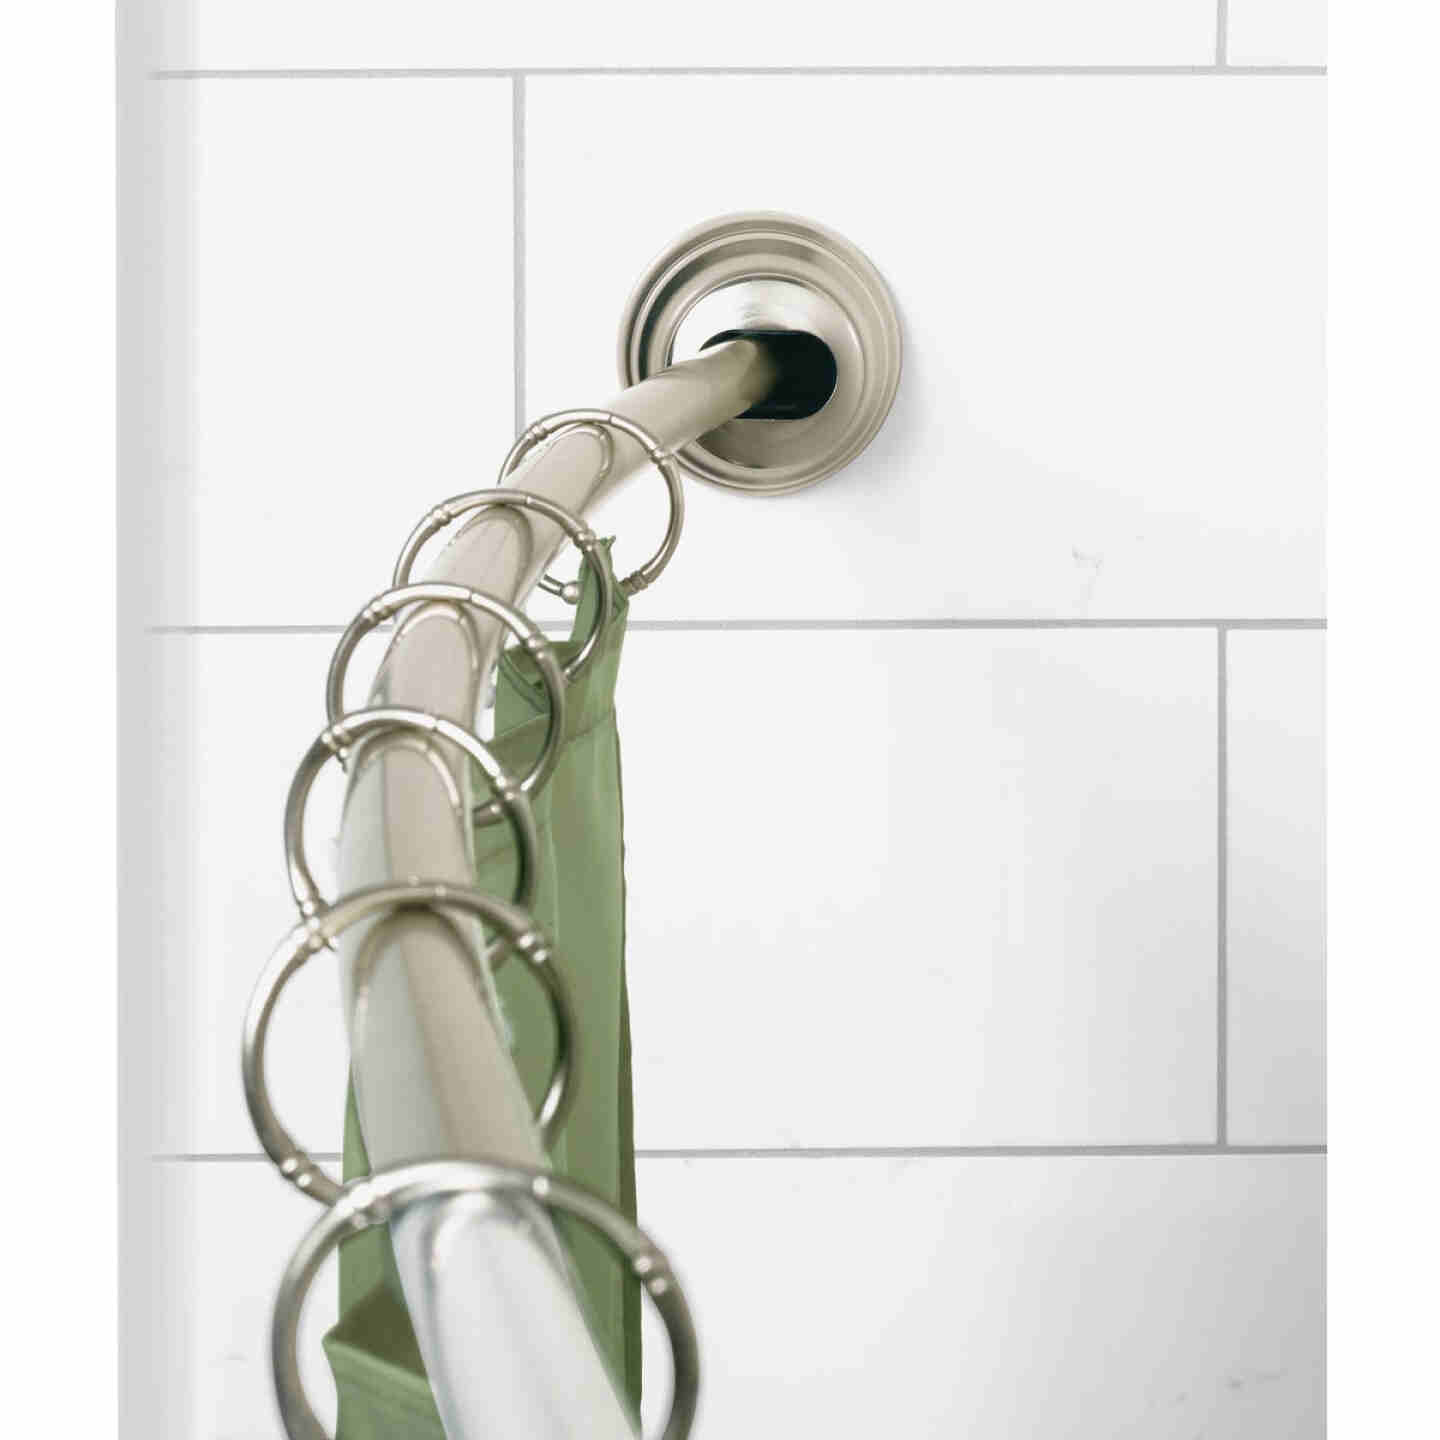 Zenna Home NeverRust 50 In. to 72 In. Adjustable Fixed or Tension Curved Shower Rod in Satin Nickel Image 2